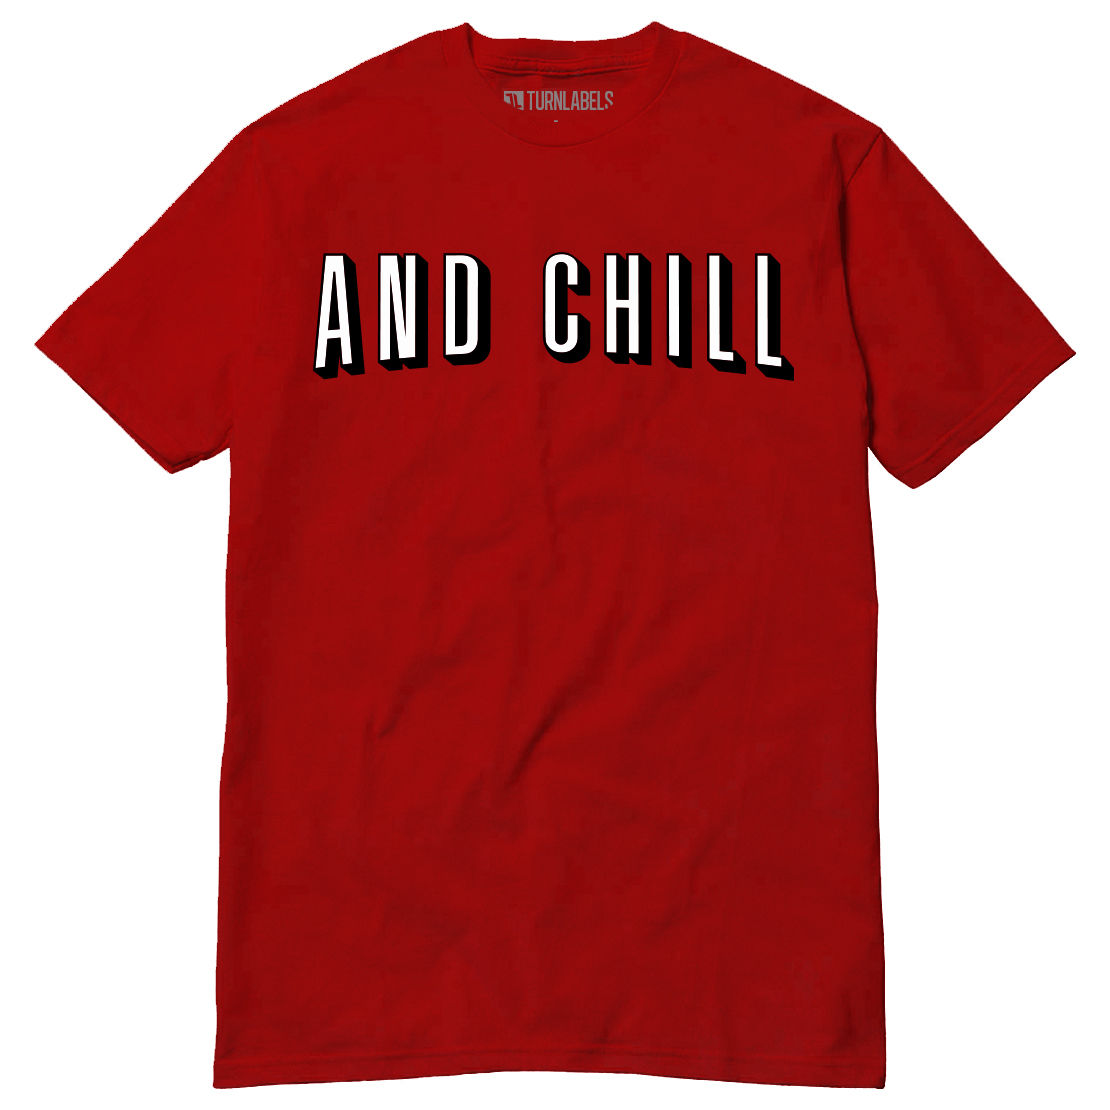 And Chill Parody T-Shirt Netflix Stream Movies Shows Meme Funny Comedy Slang ...